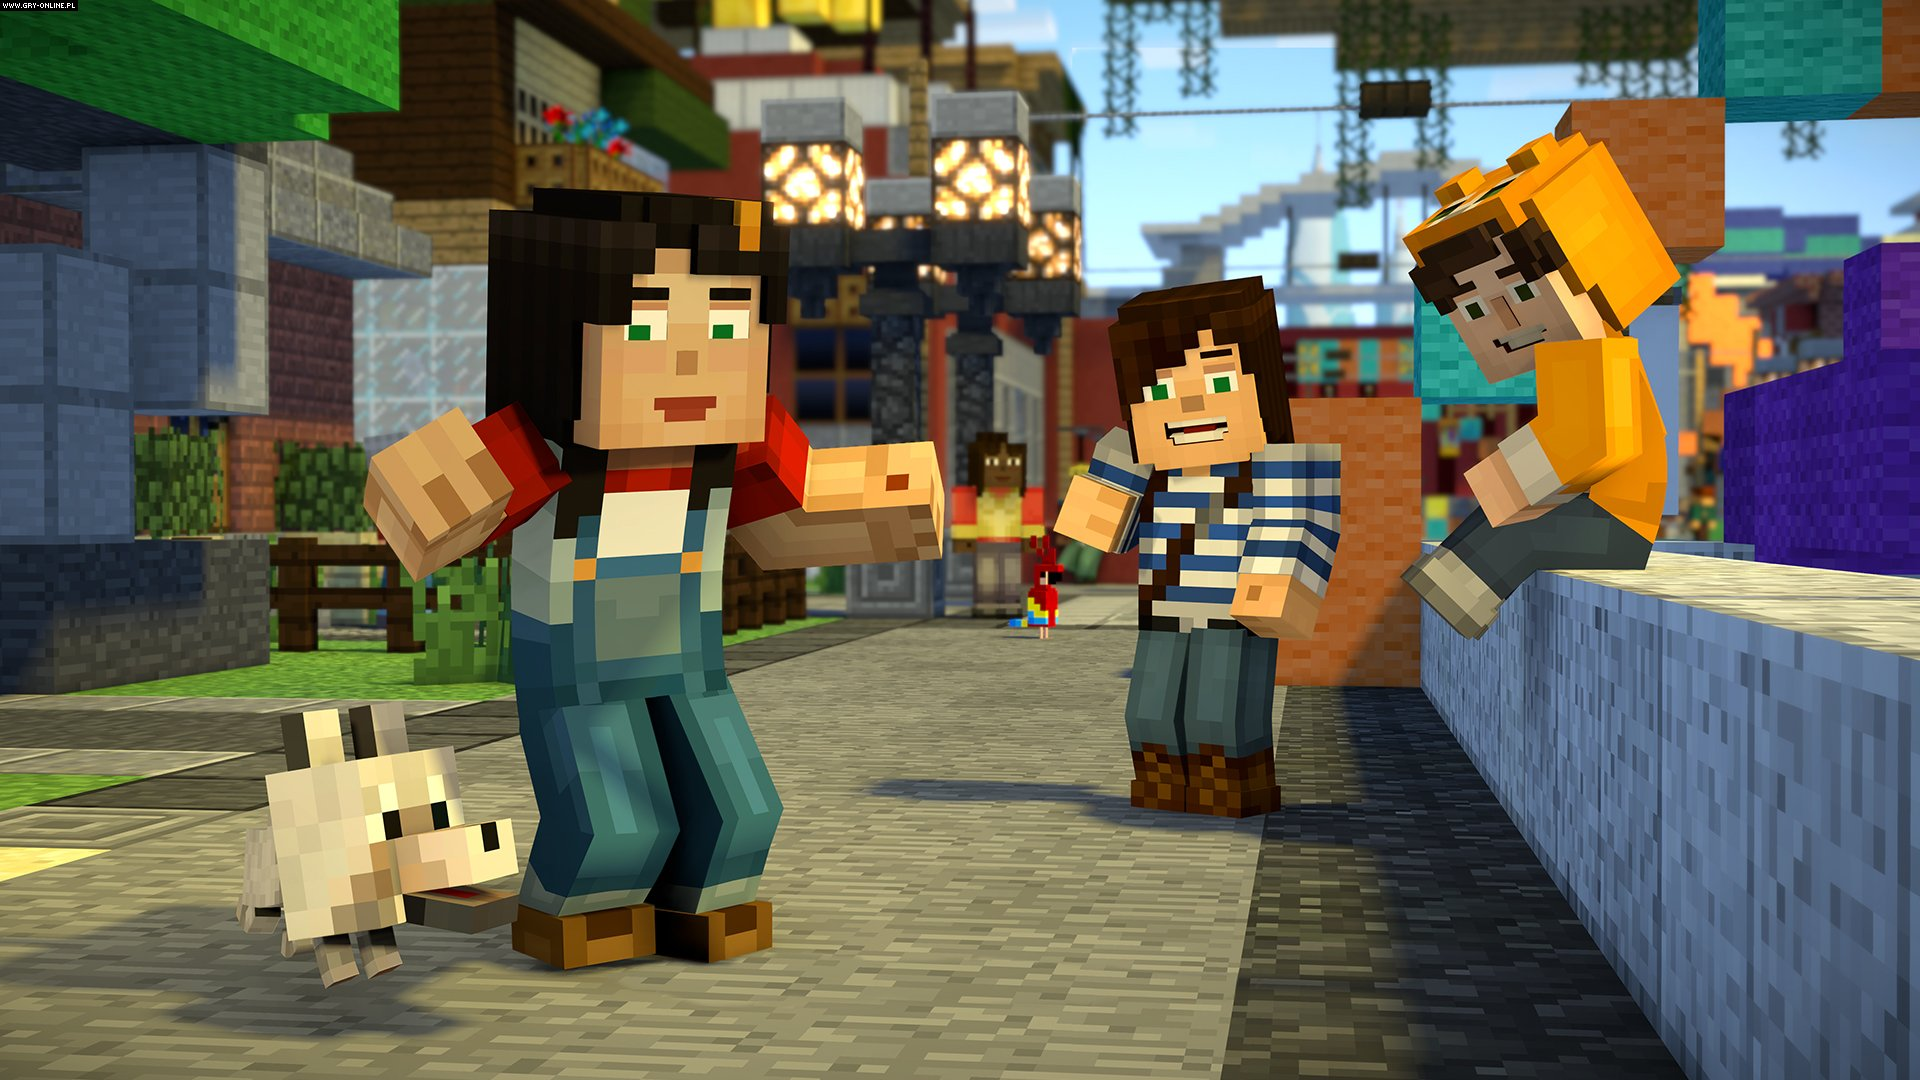 Minecraft: Story Mode - A Telltale Games Series - Season 2 PC, PS4, XONE, iOS, AND Games Image 10/10, Telltale Games